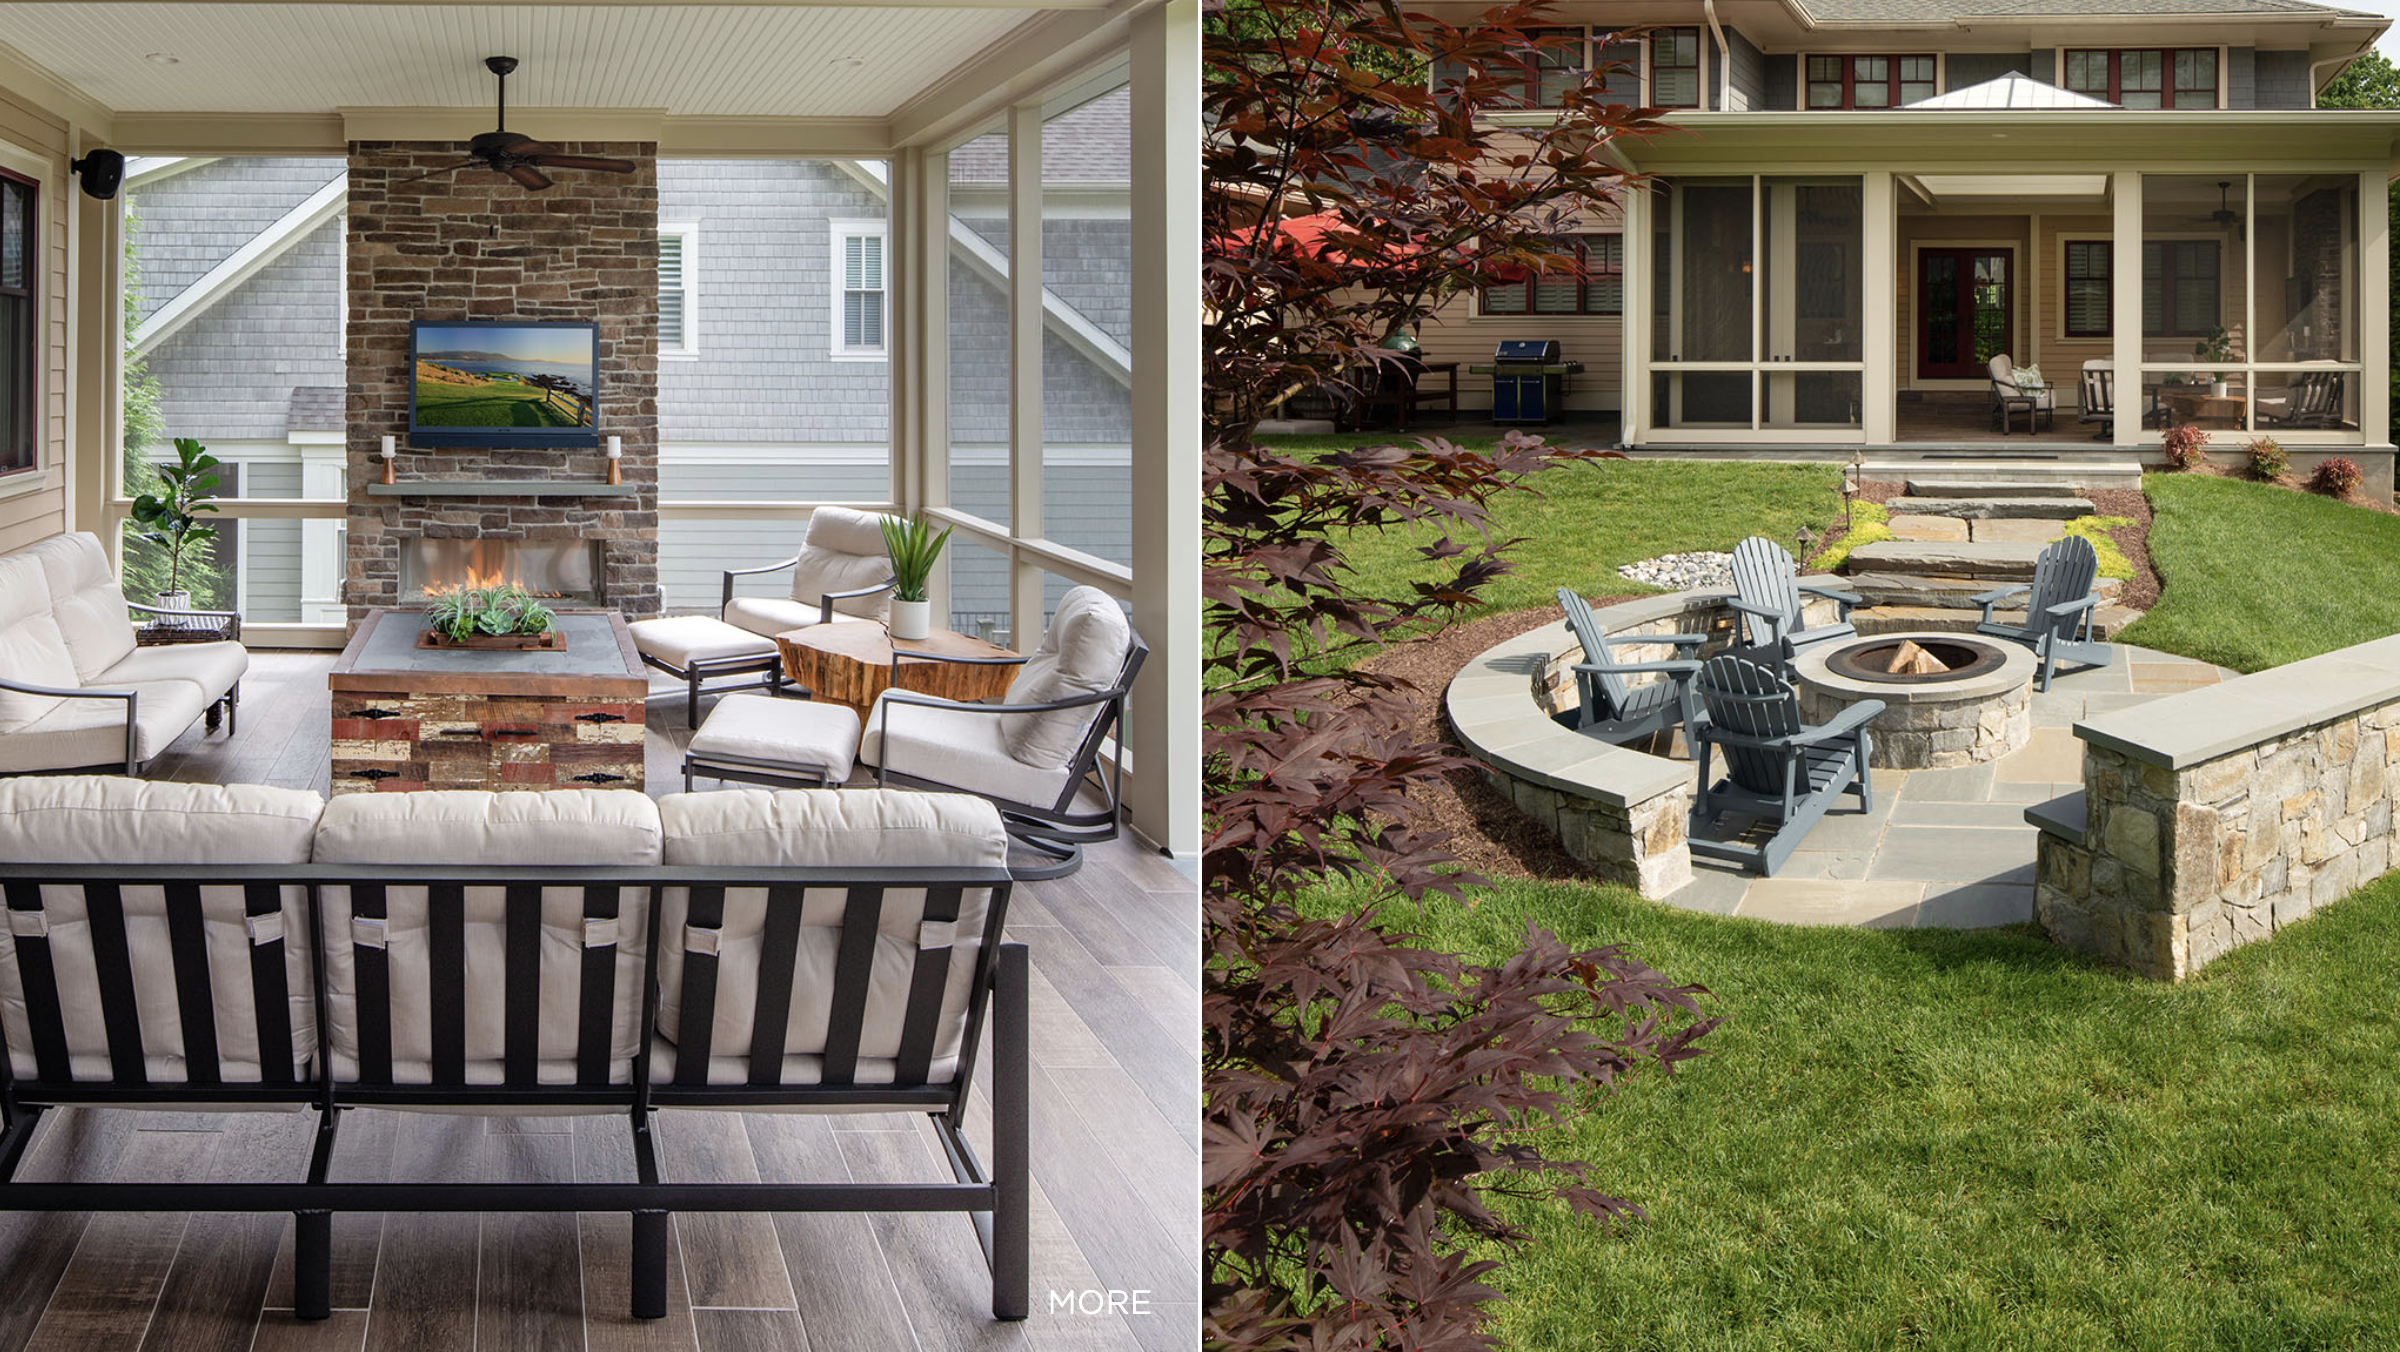 Time to Get Cozy: Making the Most of Your Outdoor Space in Cooler Weather